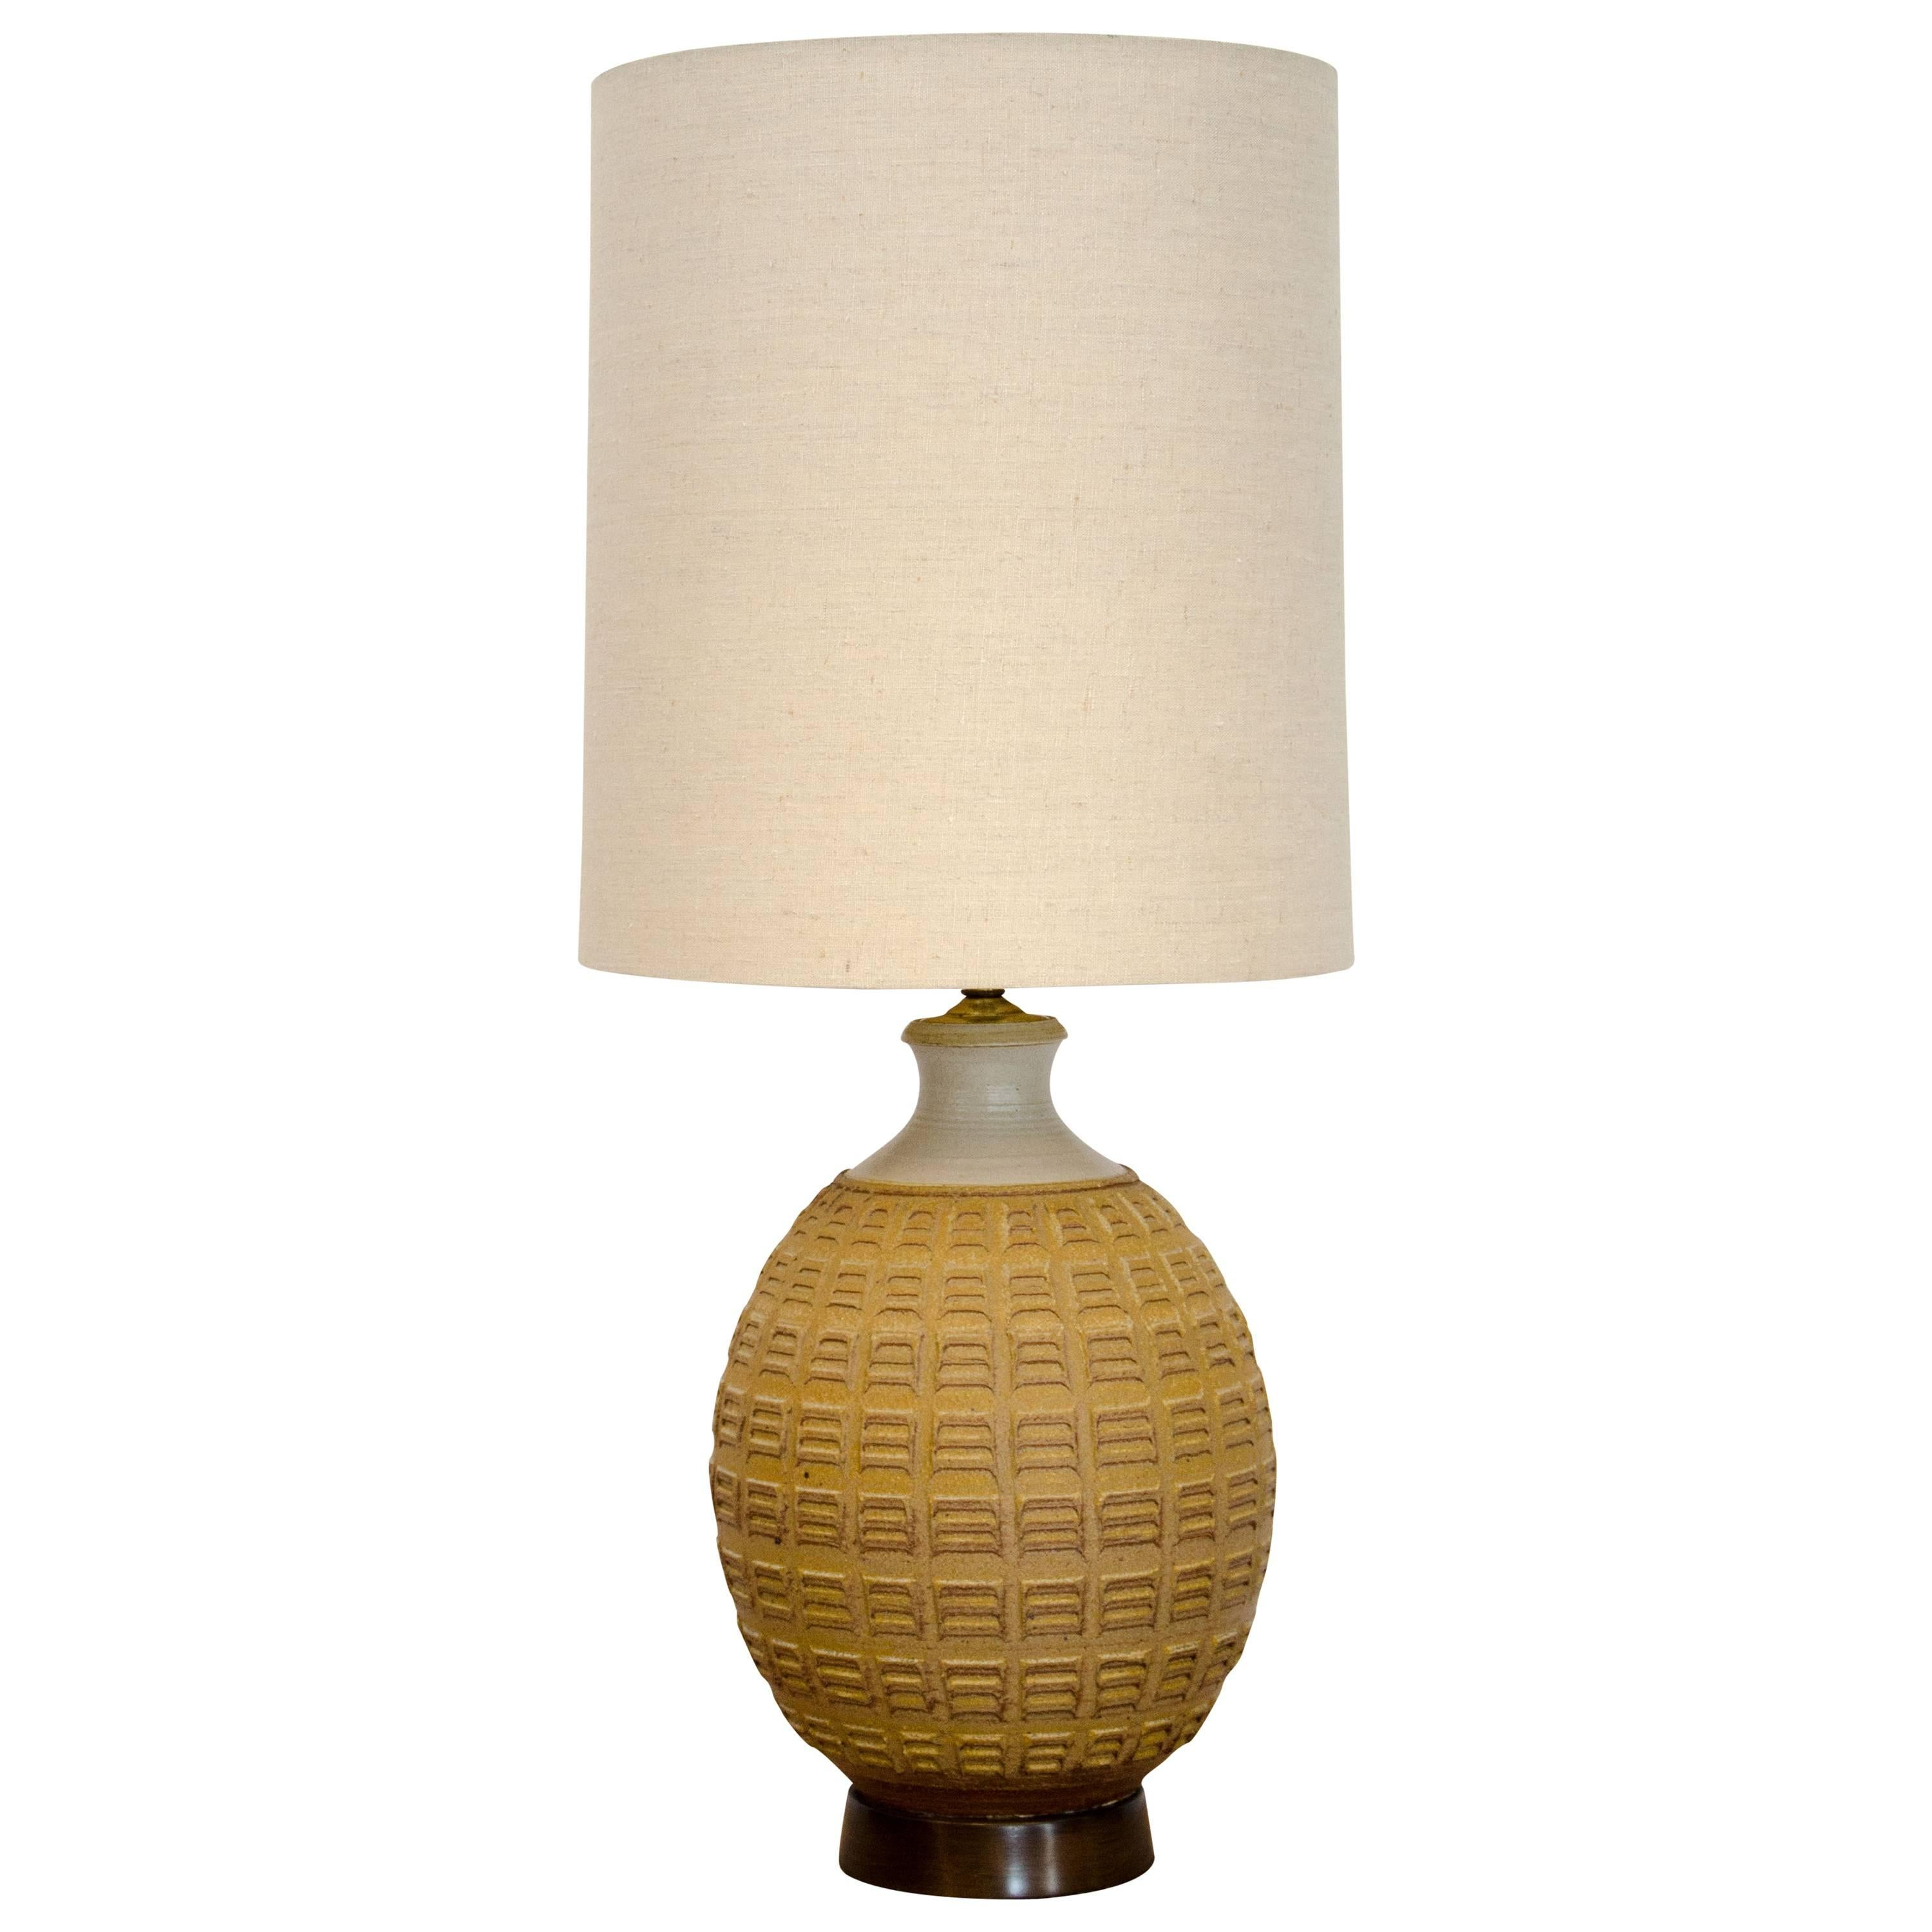 Good Studio Pottery Table Lamp By Bob Kinzie, Original Shade For Sale